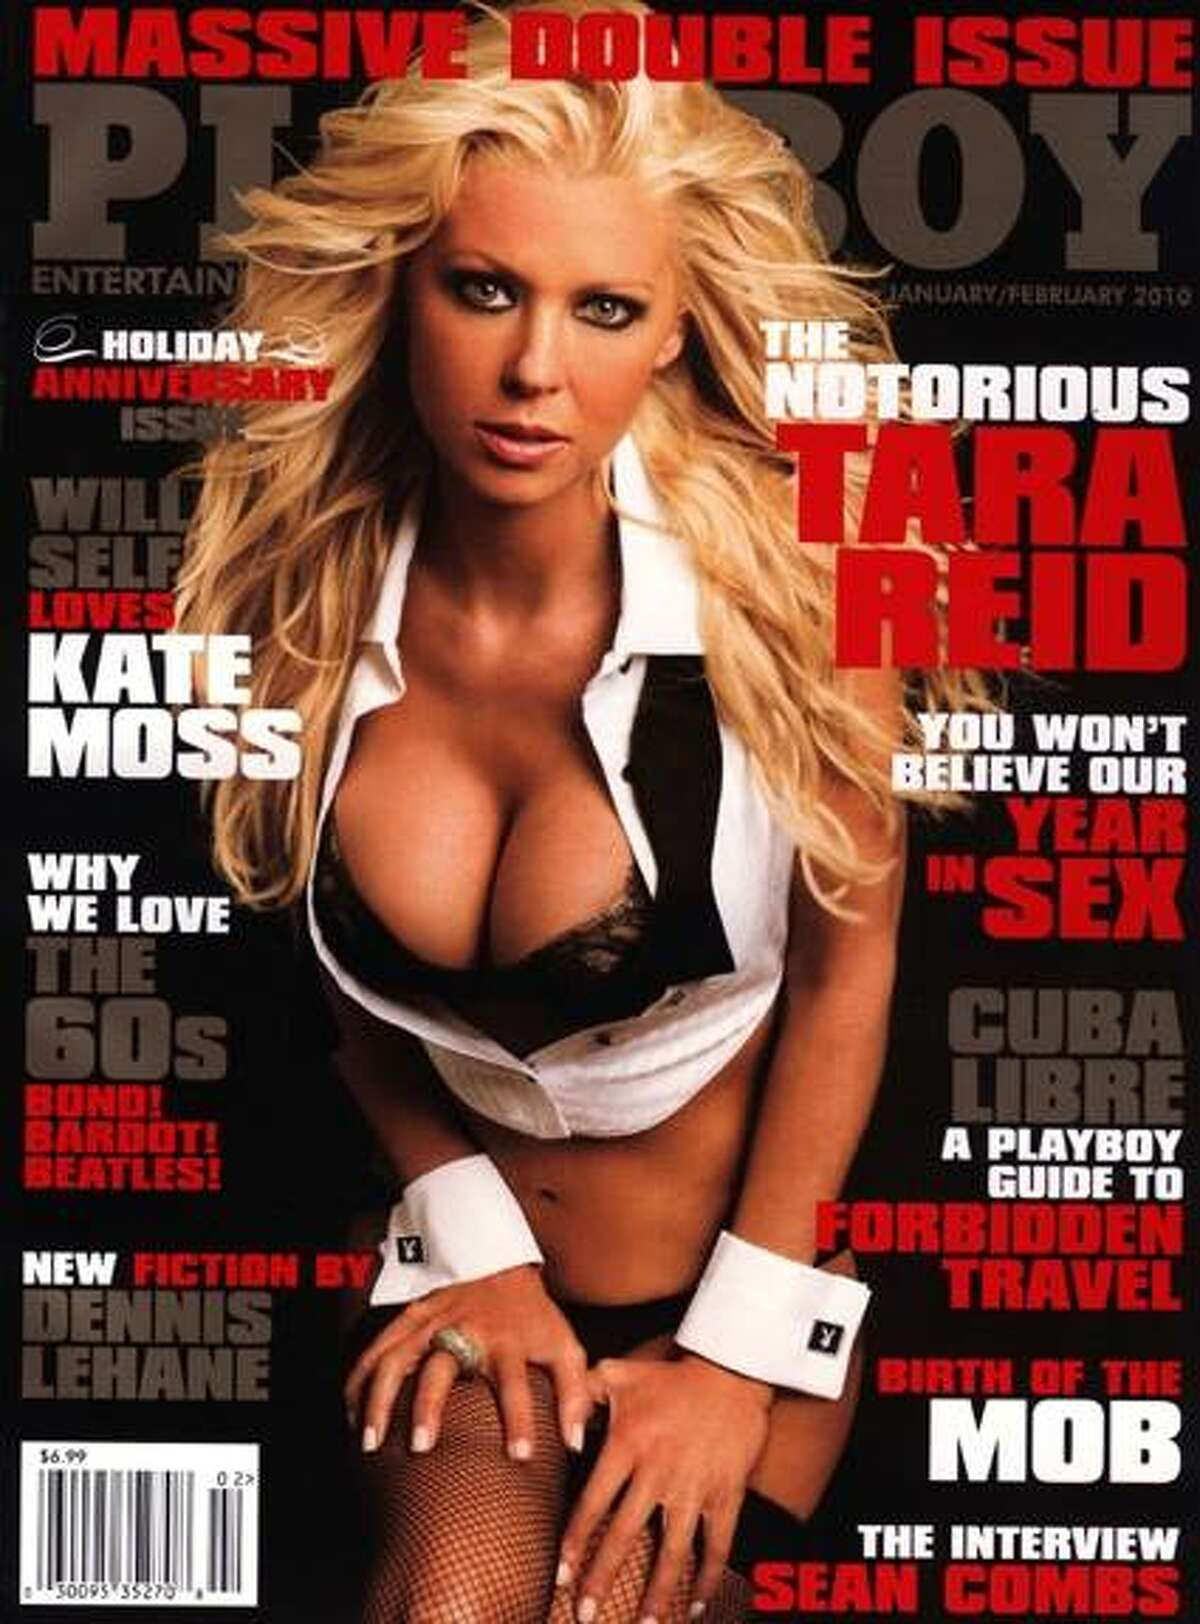 Tara Reid and her assets graced the cover of the Massive Double issue. January/February 2010